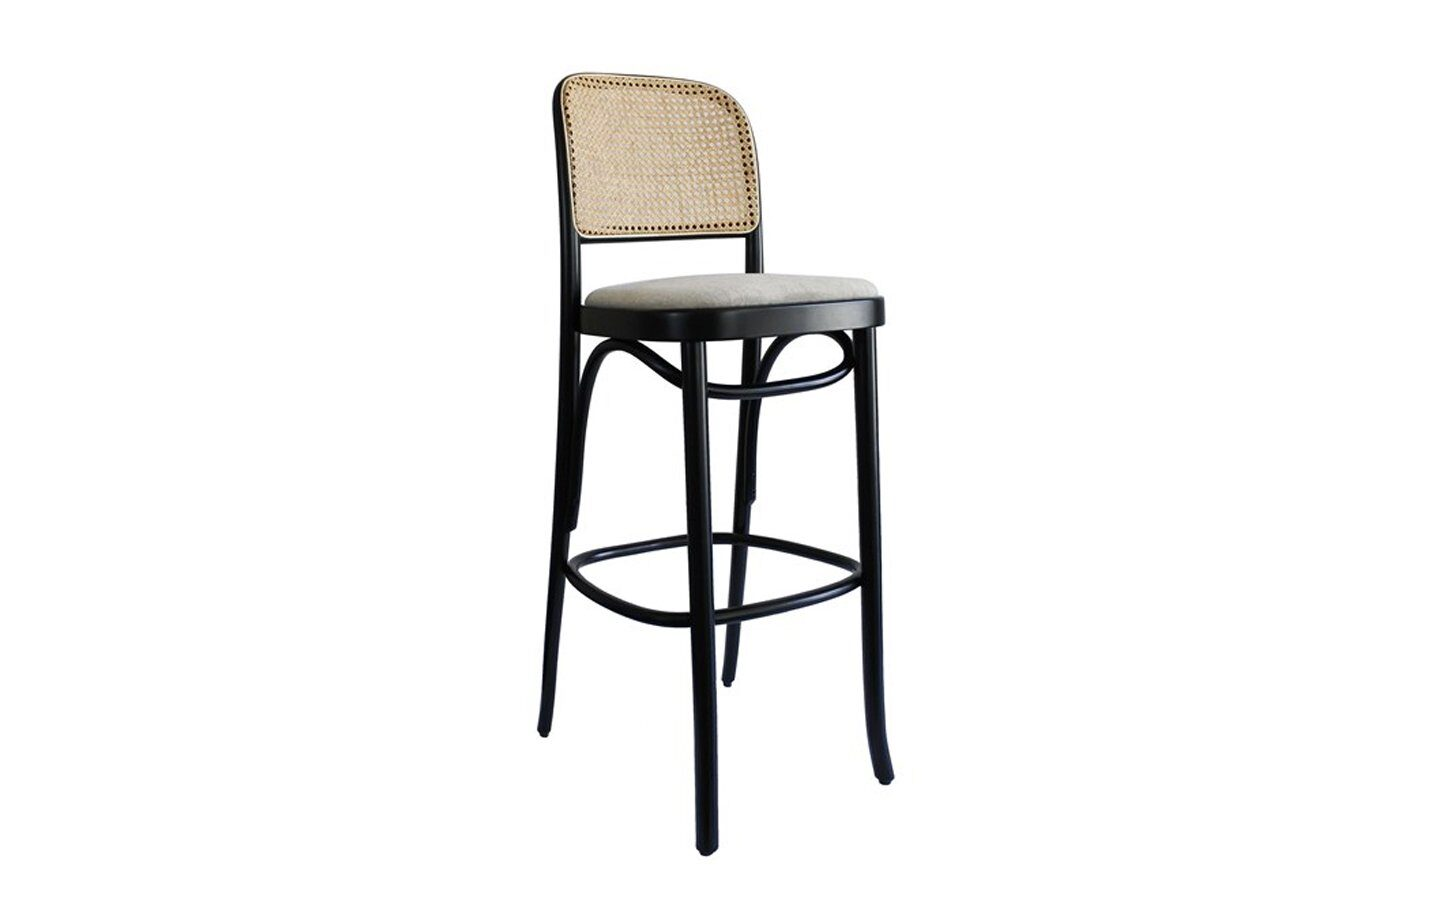 811-Barstool-Bent-wood-seat-Upholstery-Ton-05